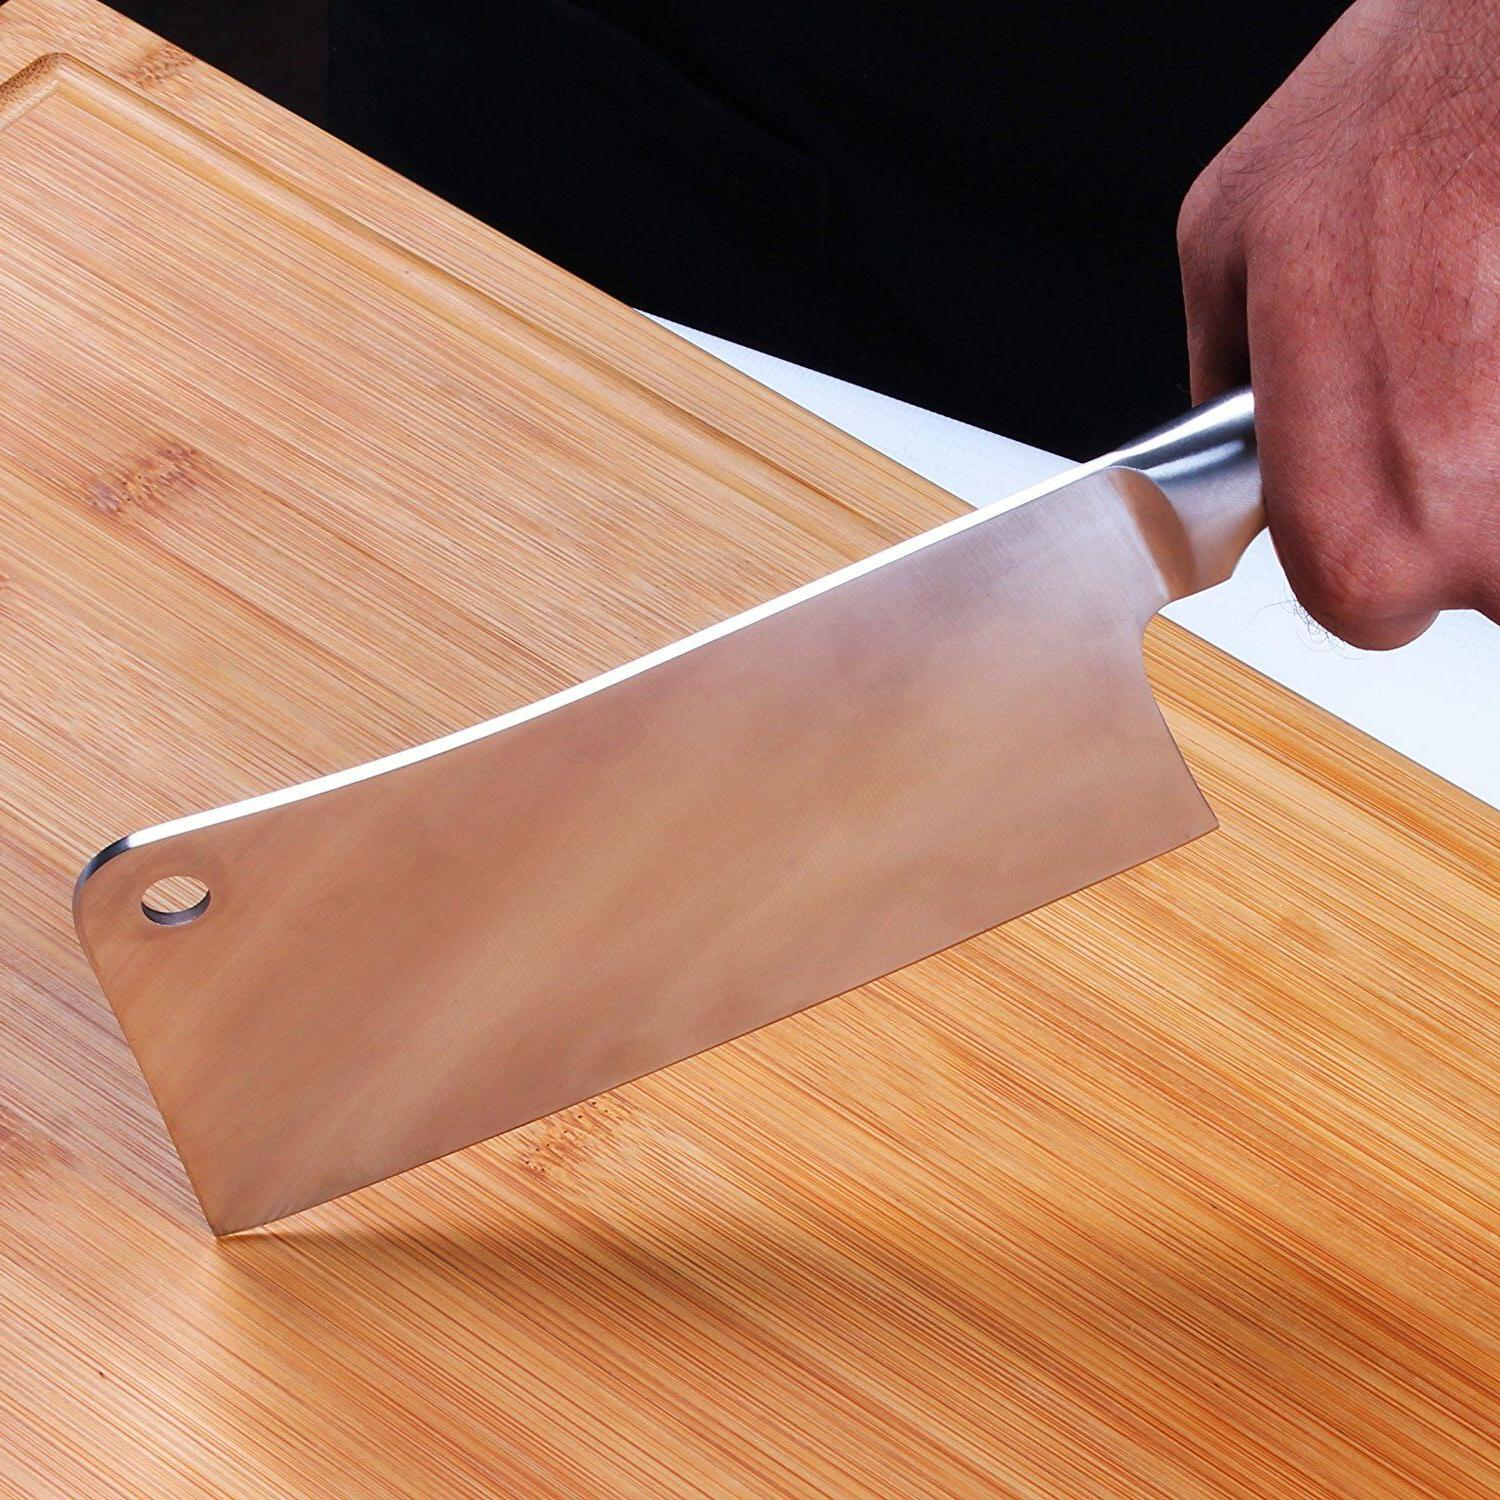 "Cleaver Knife Stainless Steel Butcher 7"" Home Utopia"